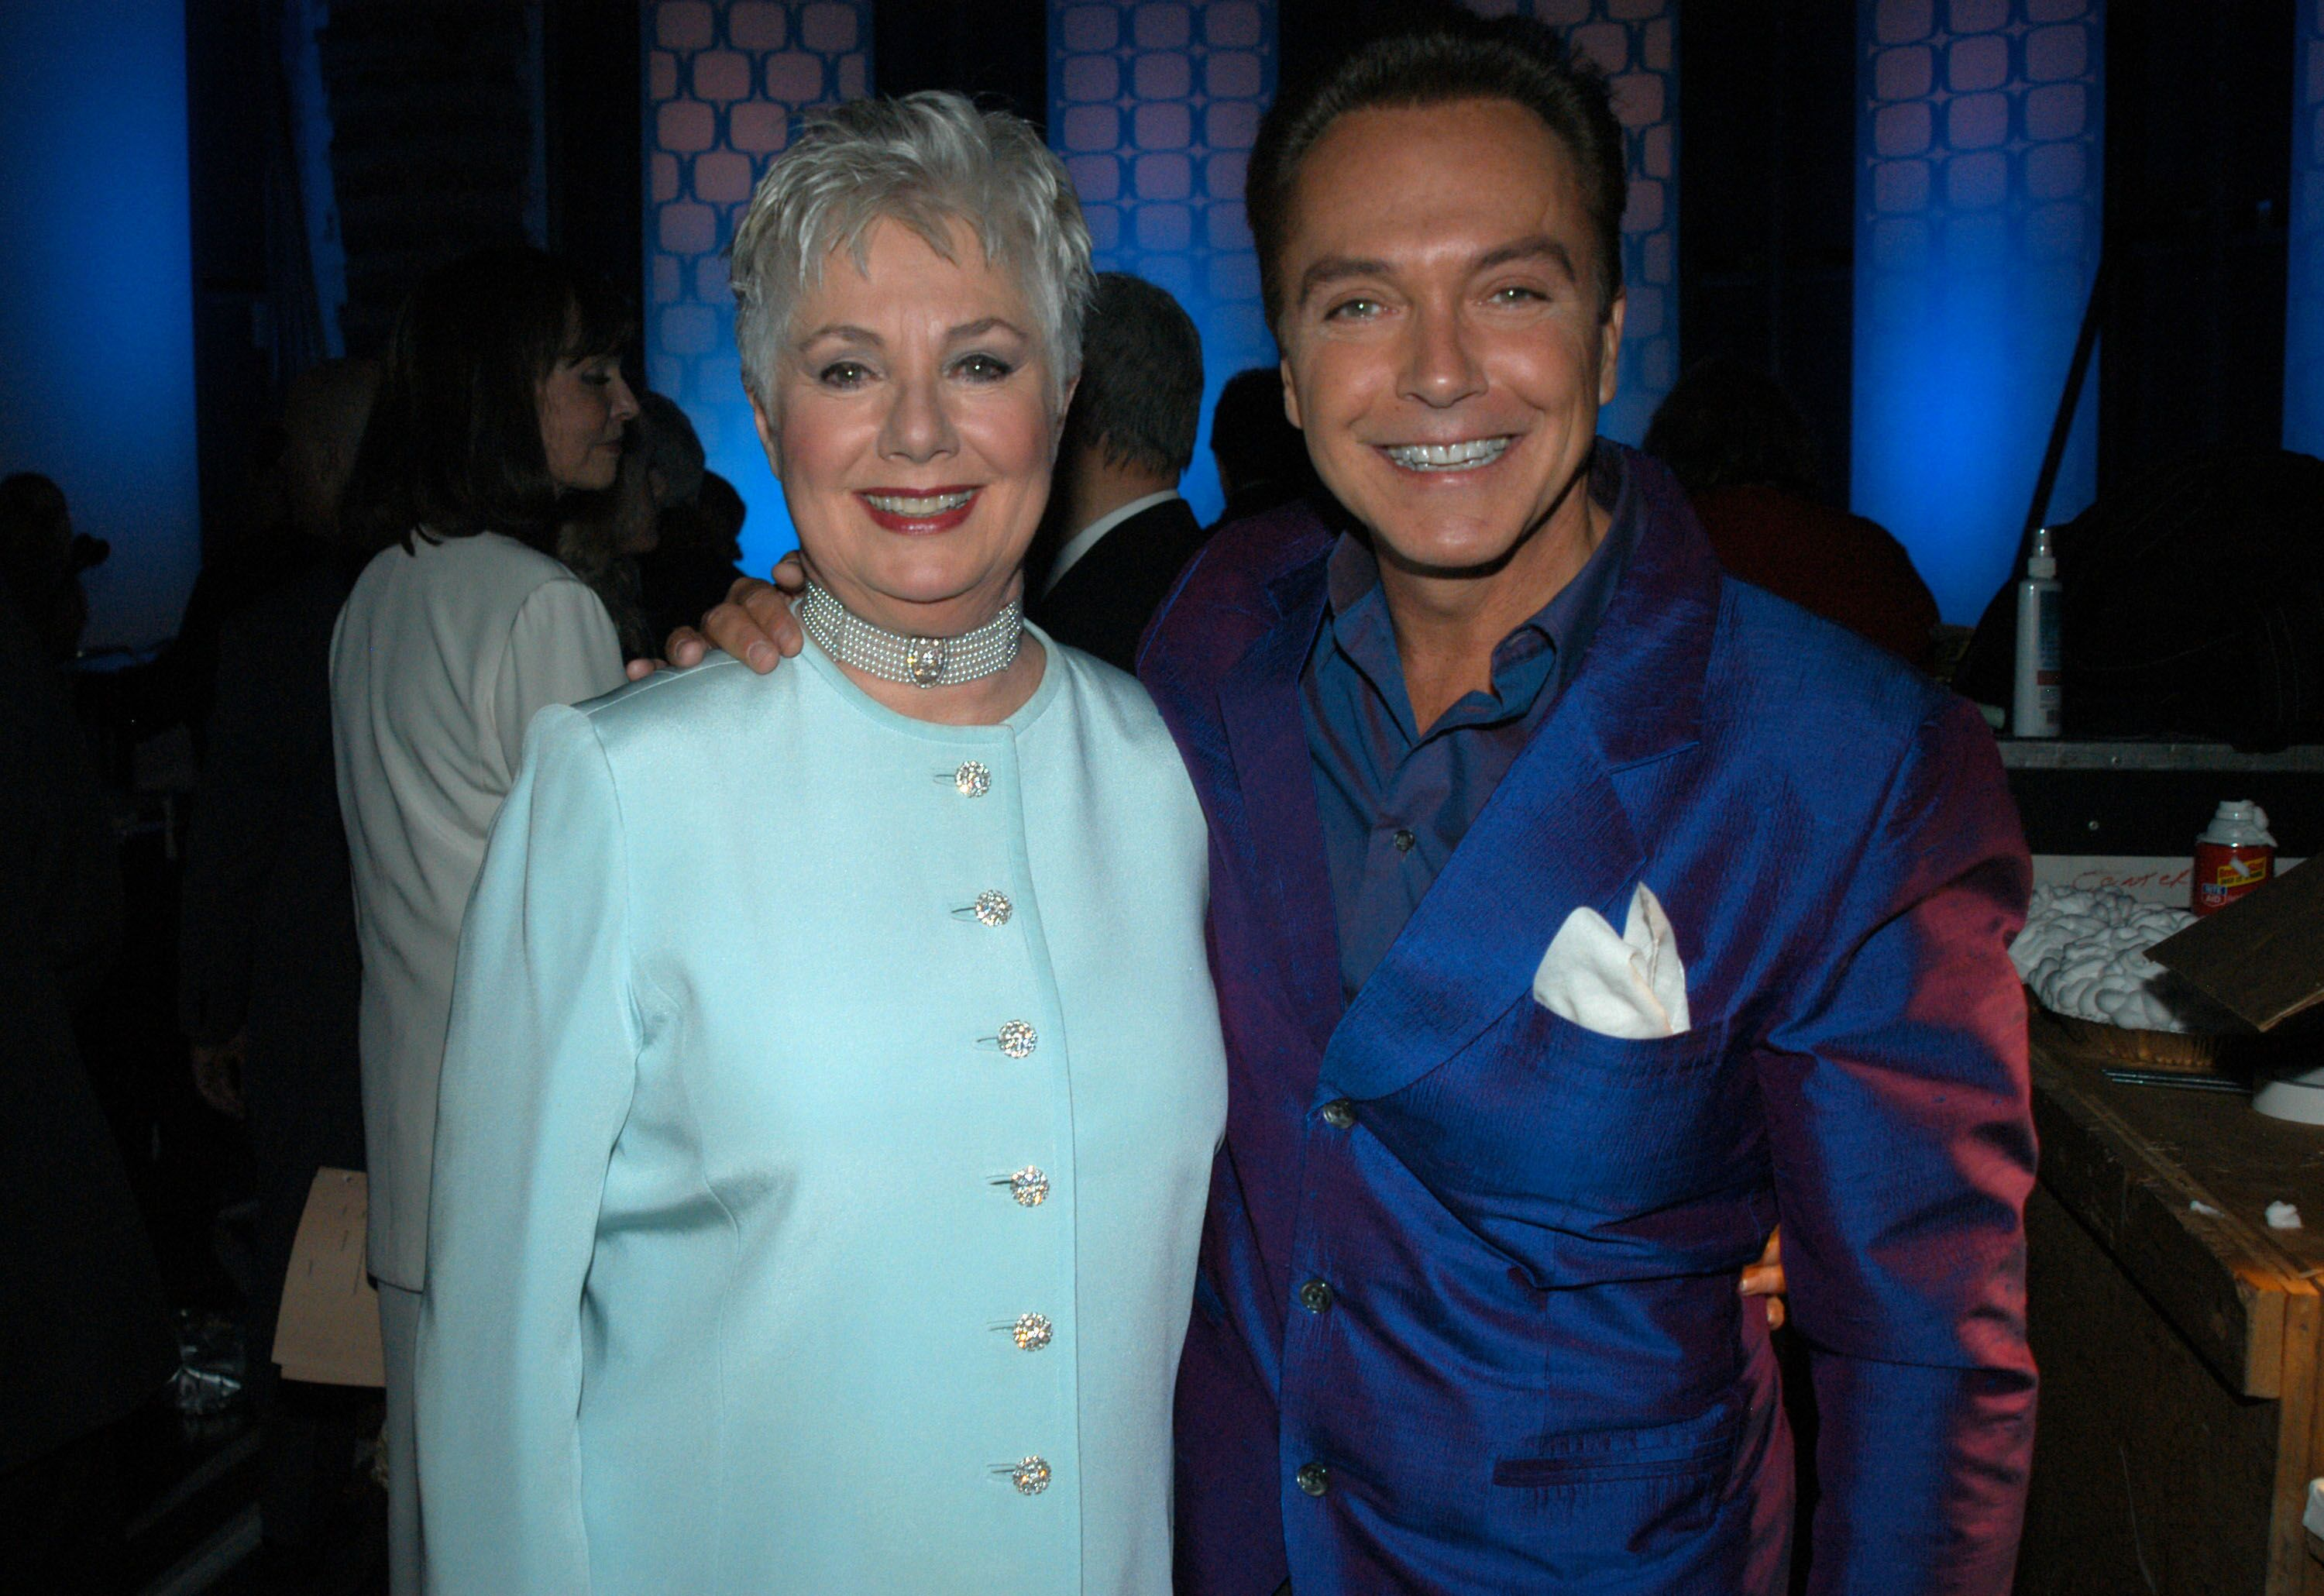 Shirley Jones and David Cassidy during The TV Land Awards at Hollywood Palladium in CA, United States on March 02, 2003 | Photo: Getty Images